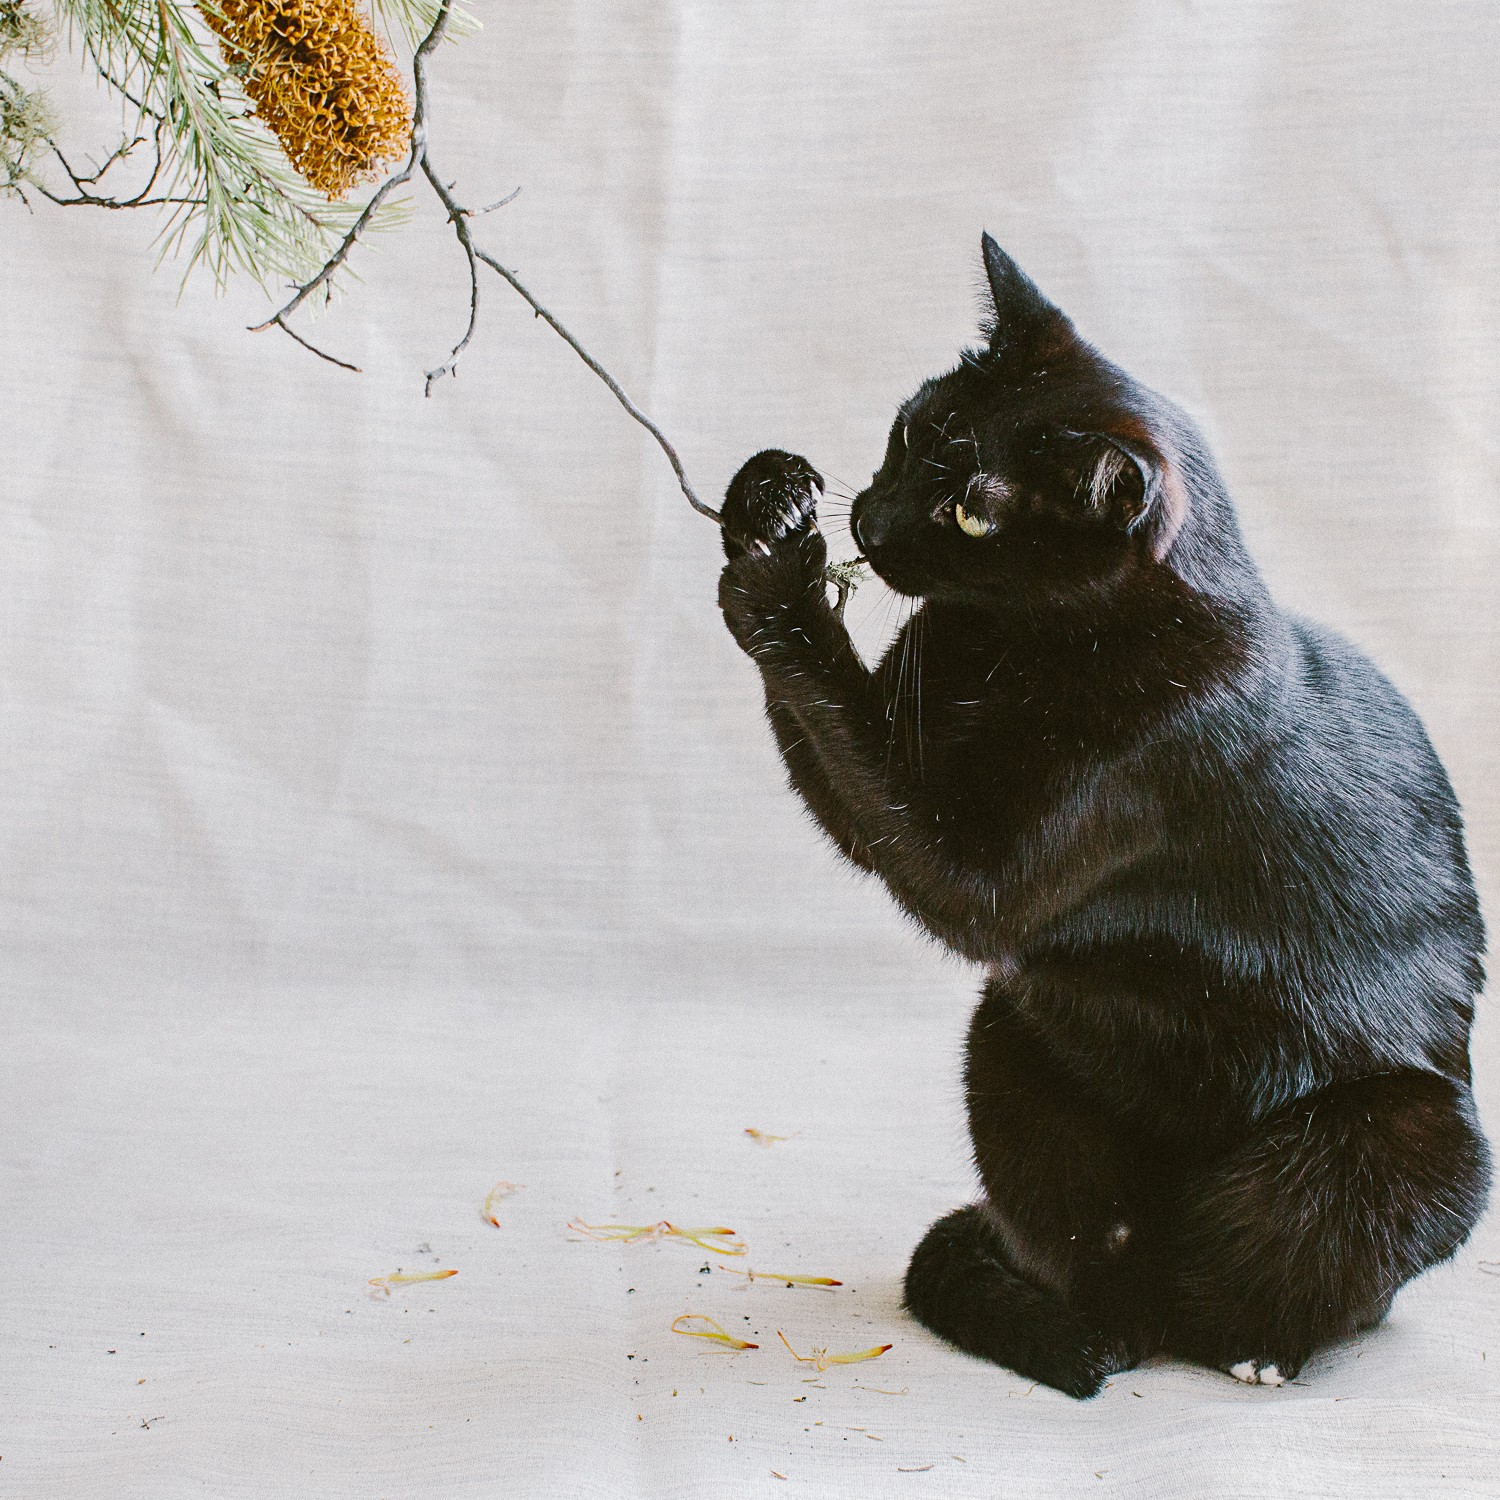 twoguineapigs_photography_ruby_slippers_cat_and_floral_series_1500-8.jpg